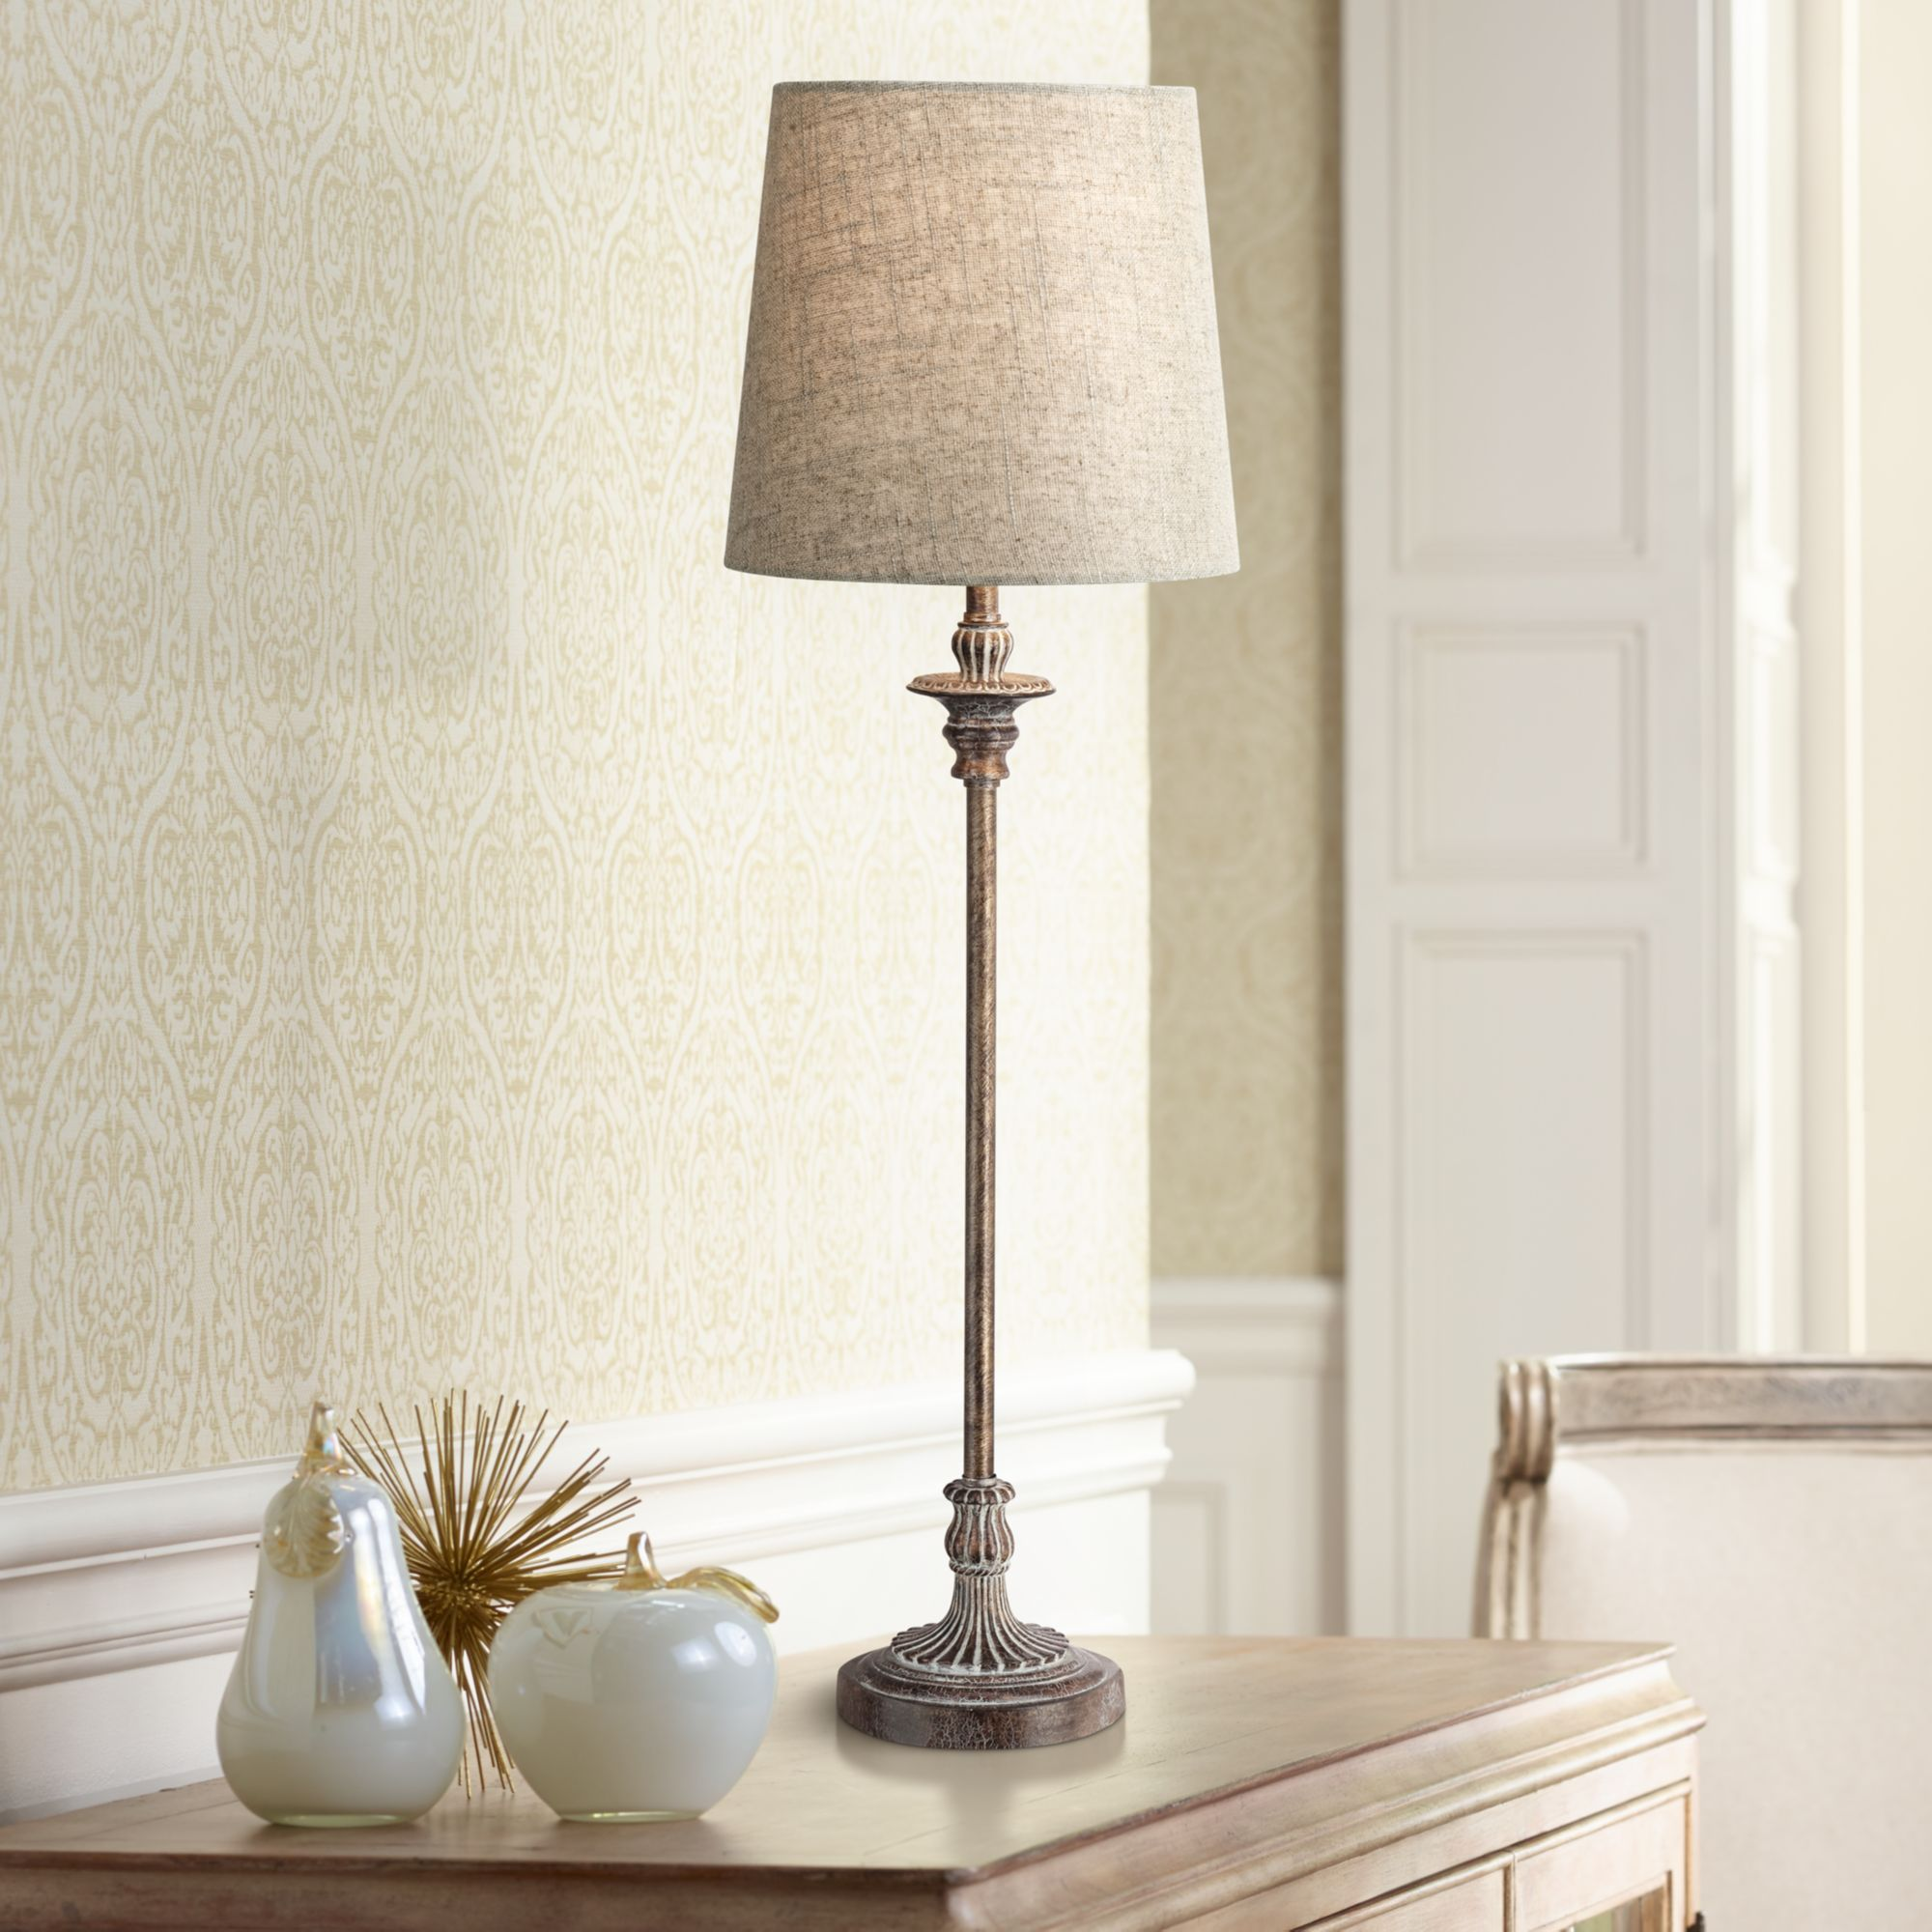 regency hill traditional buffet table lamp weathered brown linen fabric drum shade for dining room